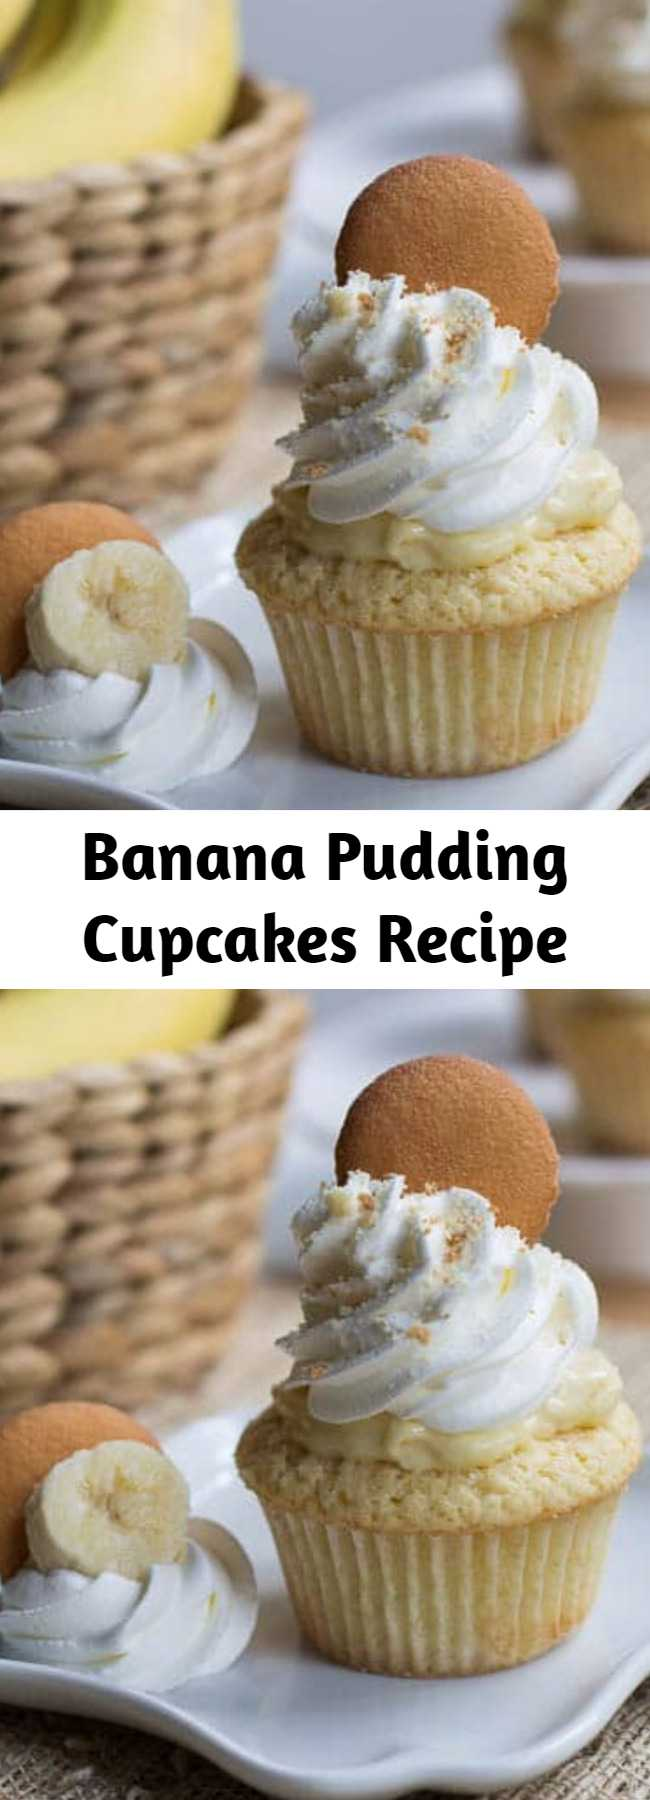 Banana Pudding Cupcakes Recipe - The cupcake version of banana pudding with a creamy pudding center, whipped topping and crushed vanilla wafers. So cool, creamy, and dreamy your taste buds won't know what hit them!